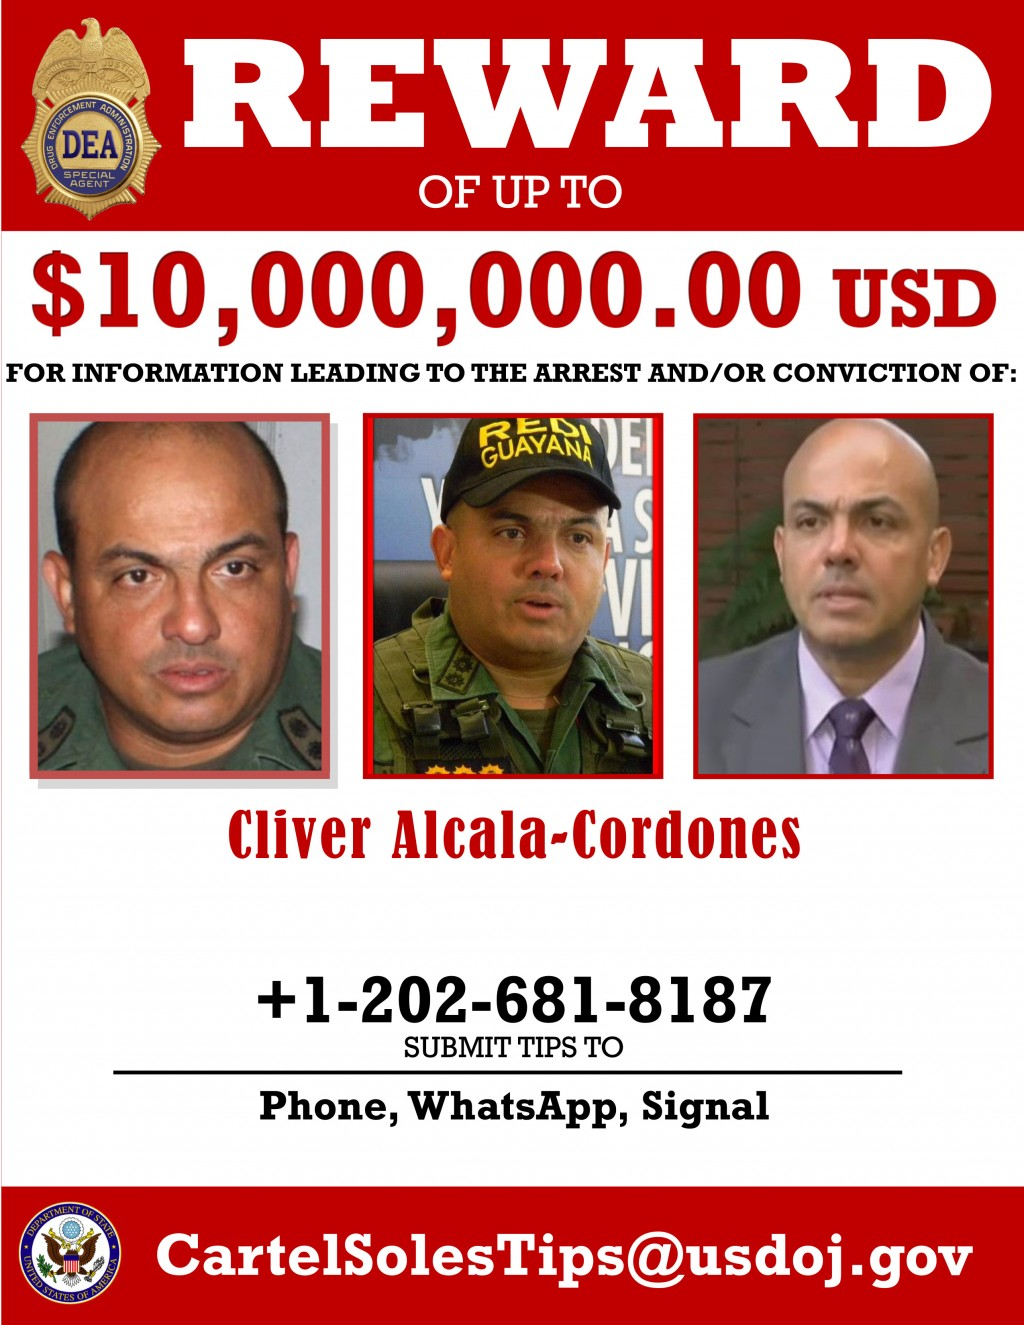 This image provided by the U.S. Department of Justice shows a reward poster for Cliver Alcala-Cordones that was released on Thursday, March 26, 2020. ...